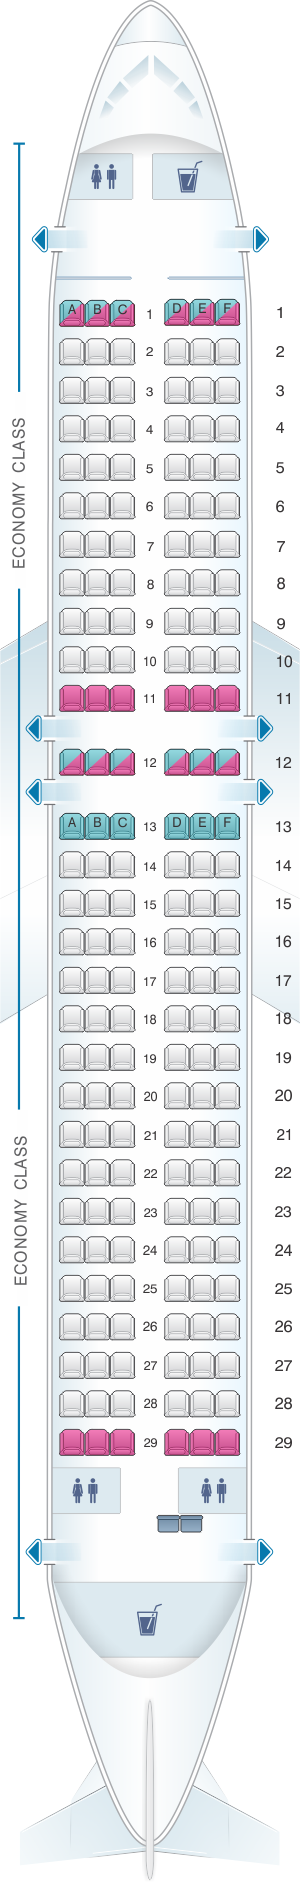 Seat map for White Airways Airbus A320